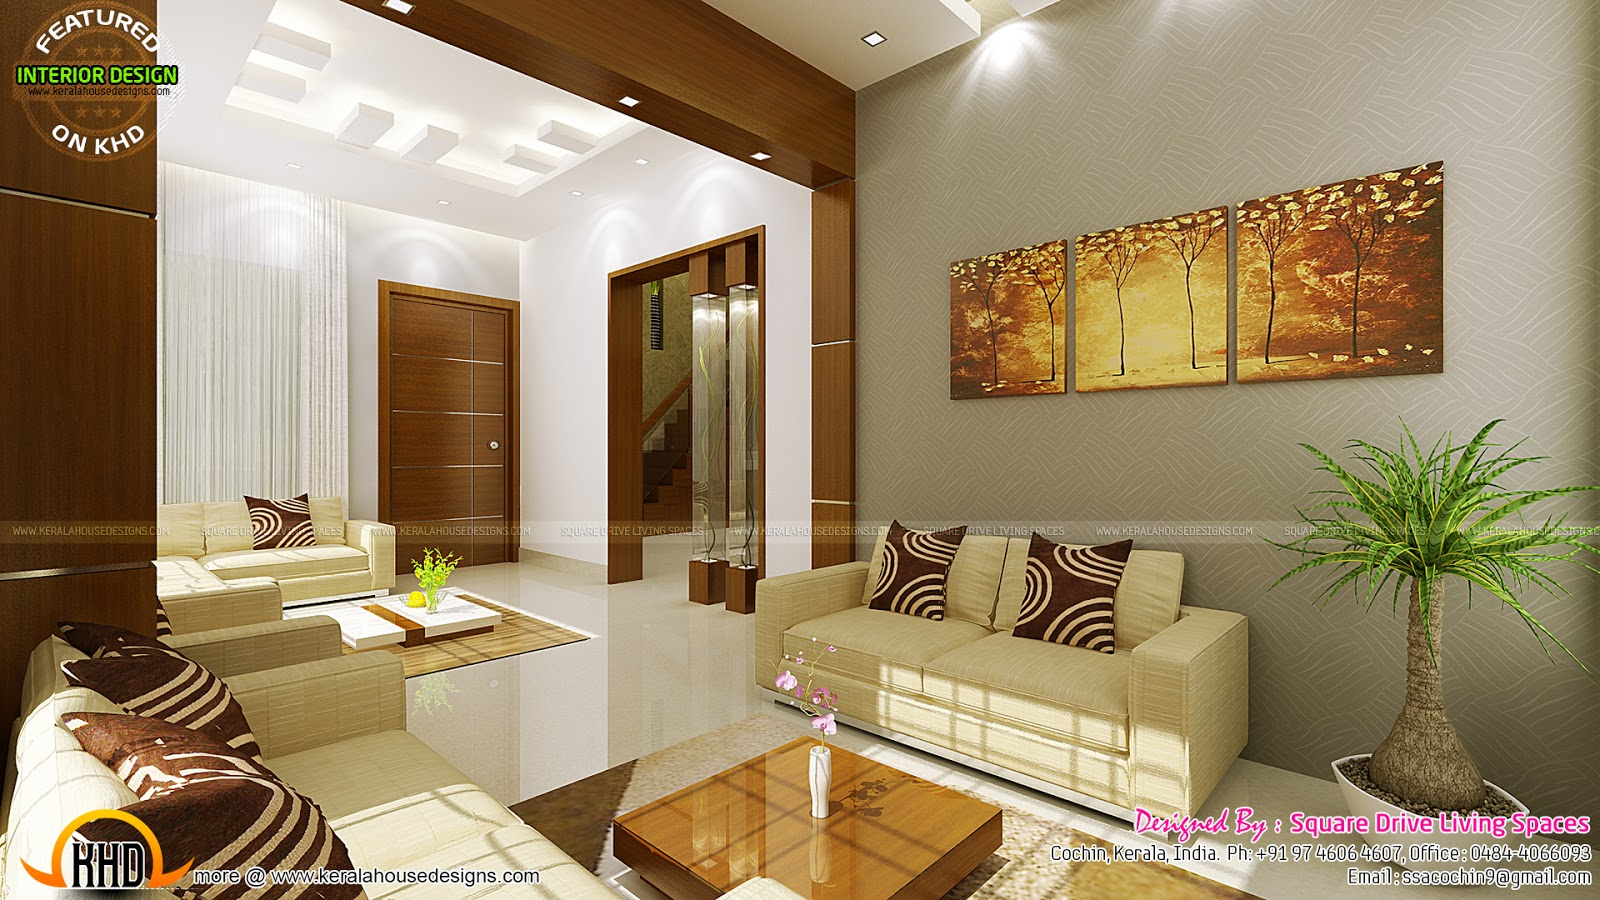 Contemporary kitchen dining and living room kerala home for Interior designs home